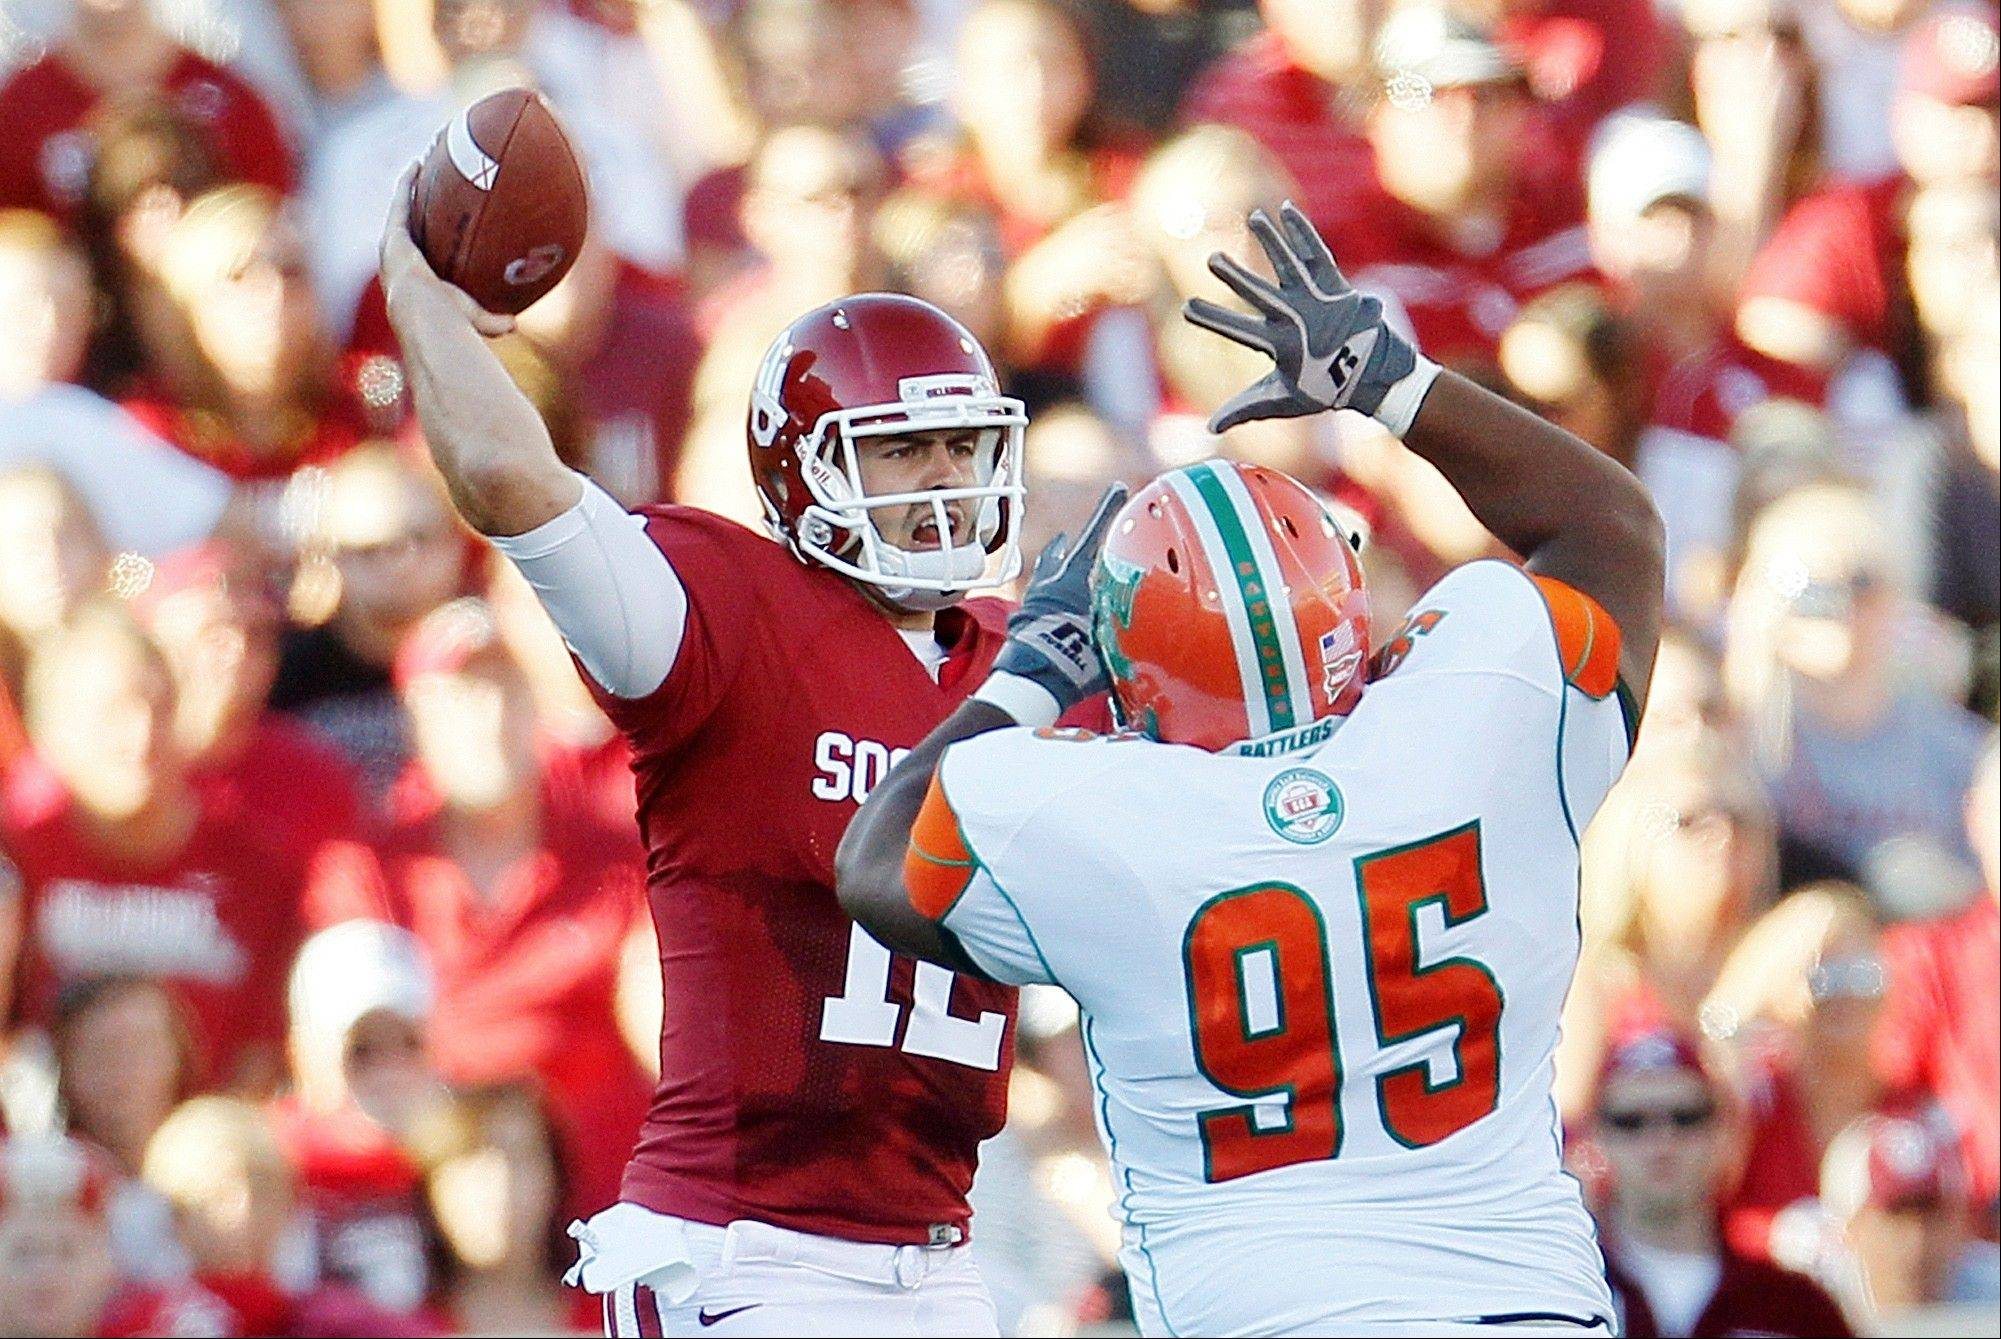 Oklahoma quarterback Landry Jones passes under pressure from Florida A&M defensive tackle Padric Scott during the first quarter Saturday in Norman, Okla.